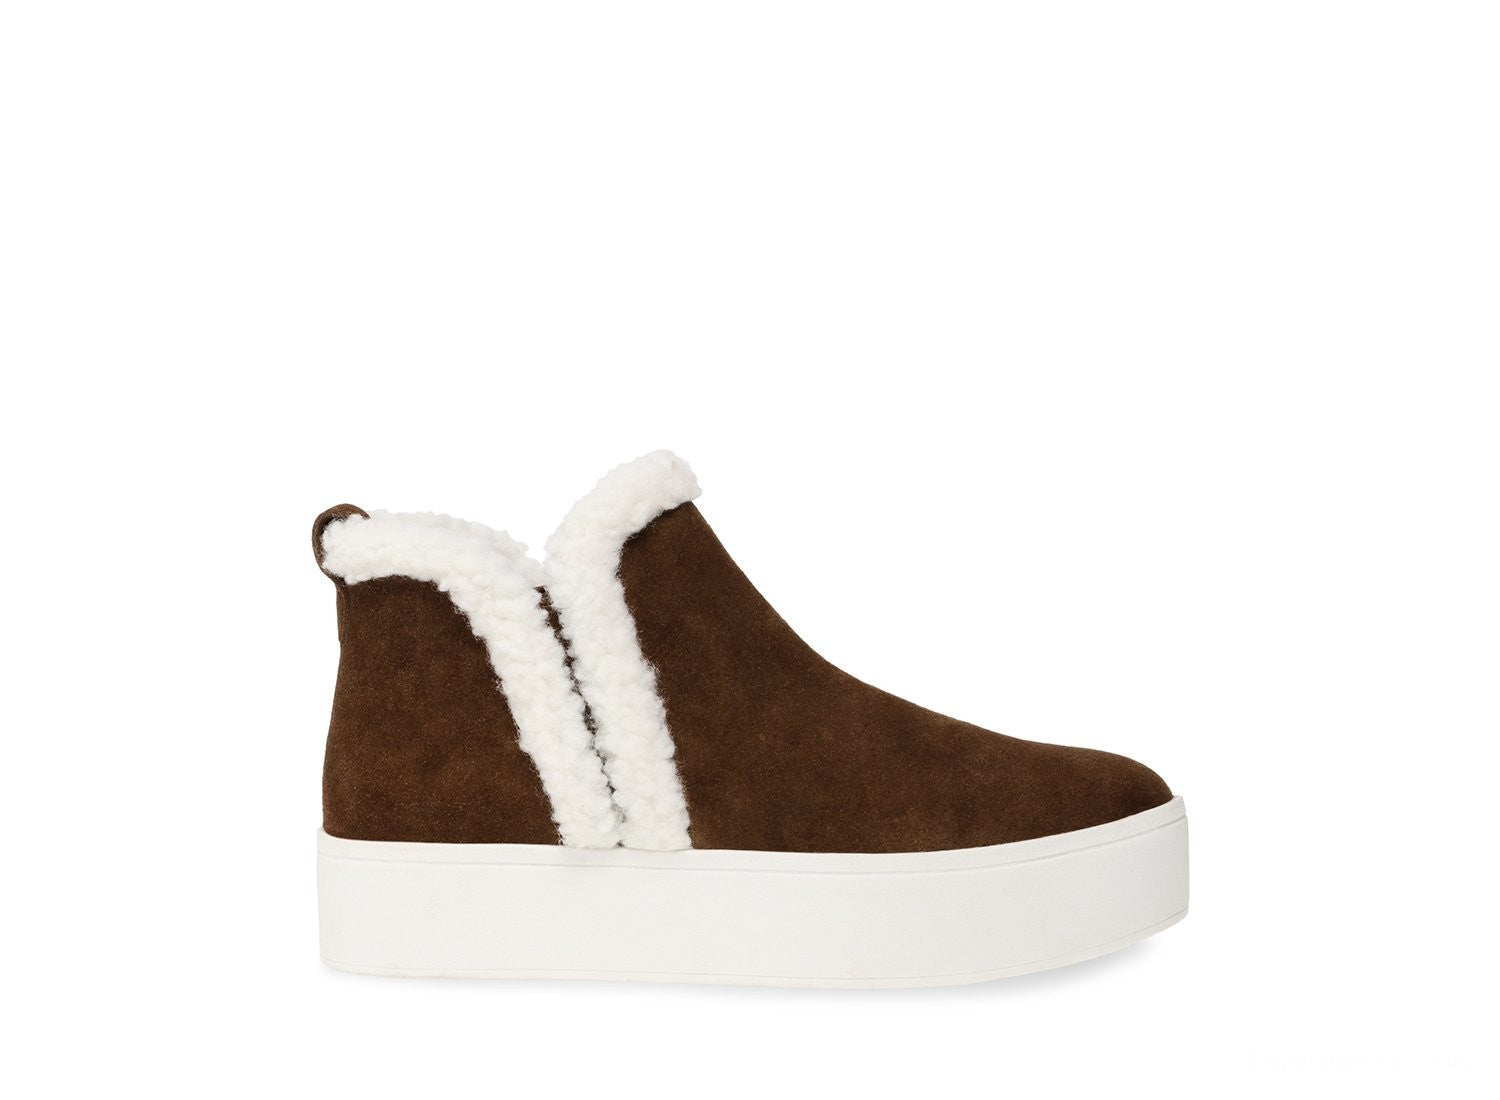 color-chestnut-suede